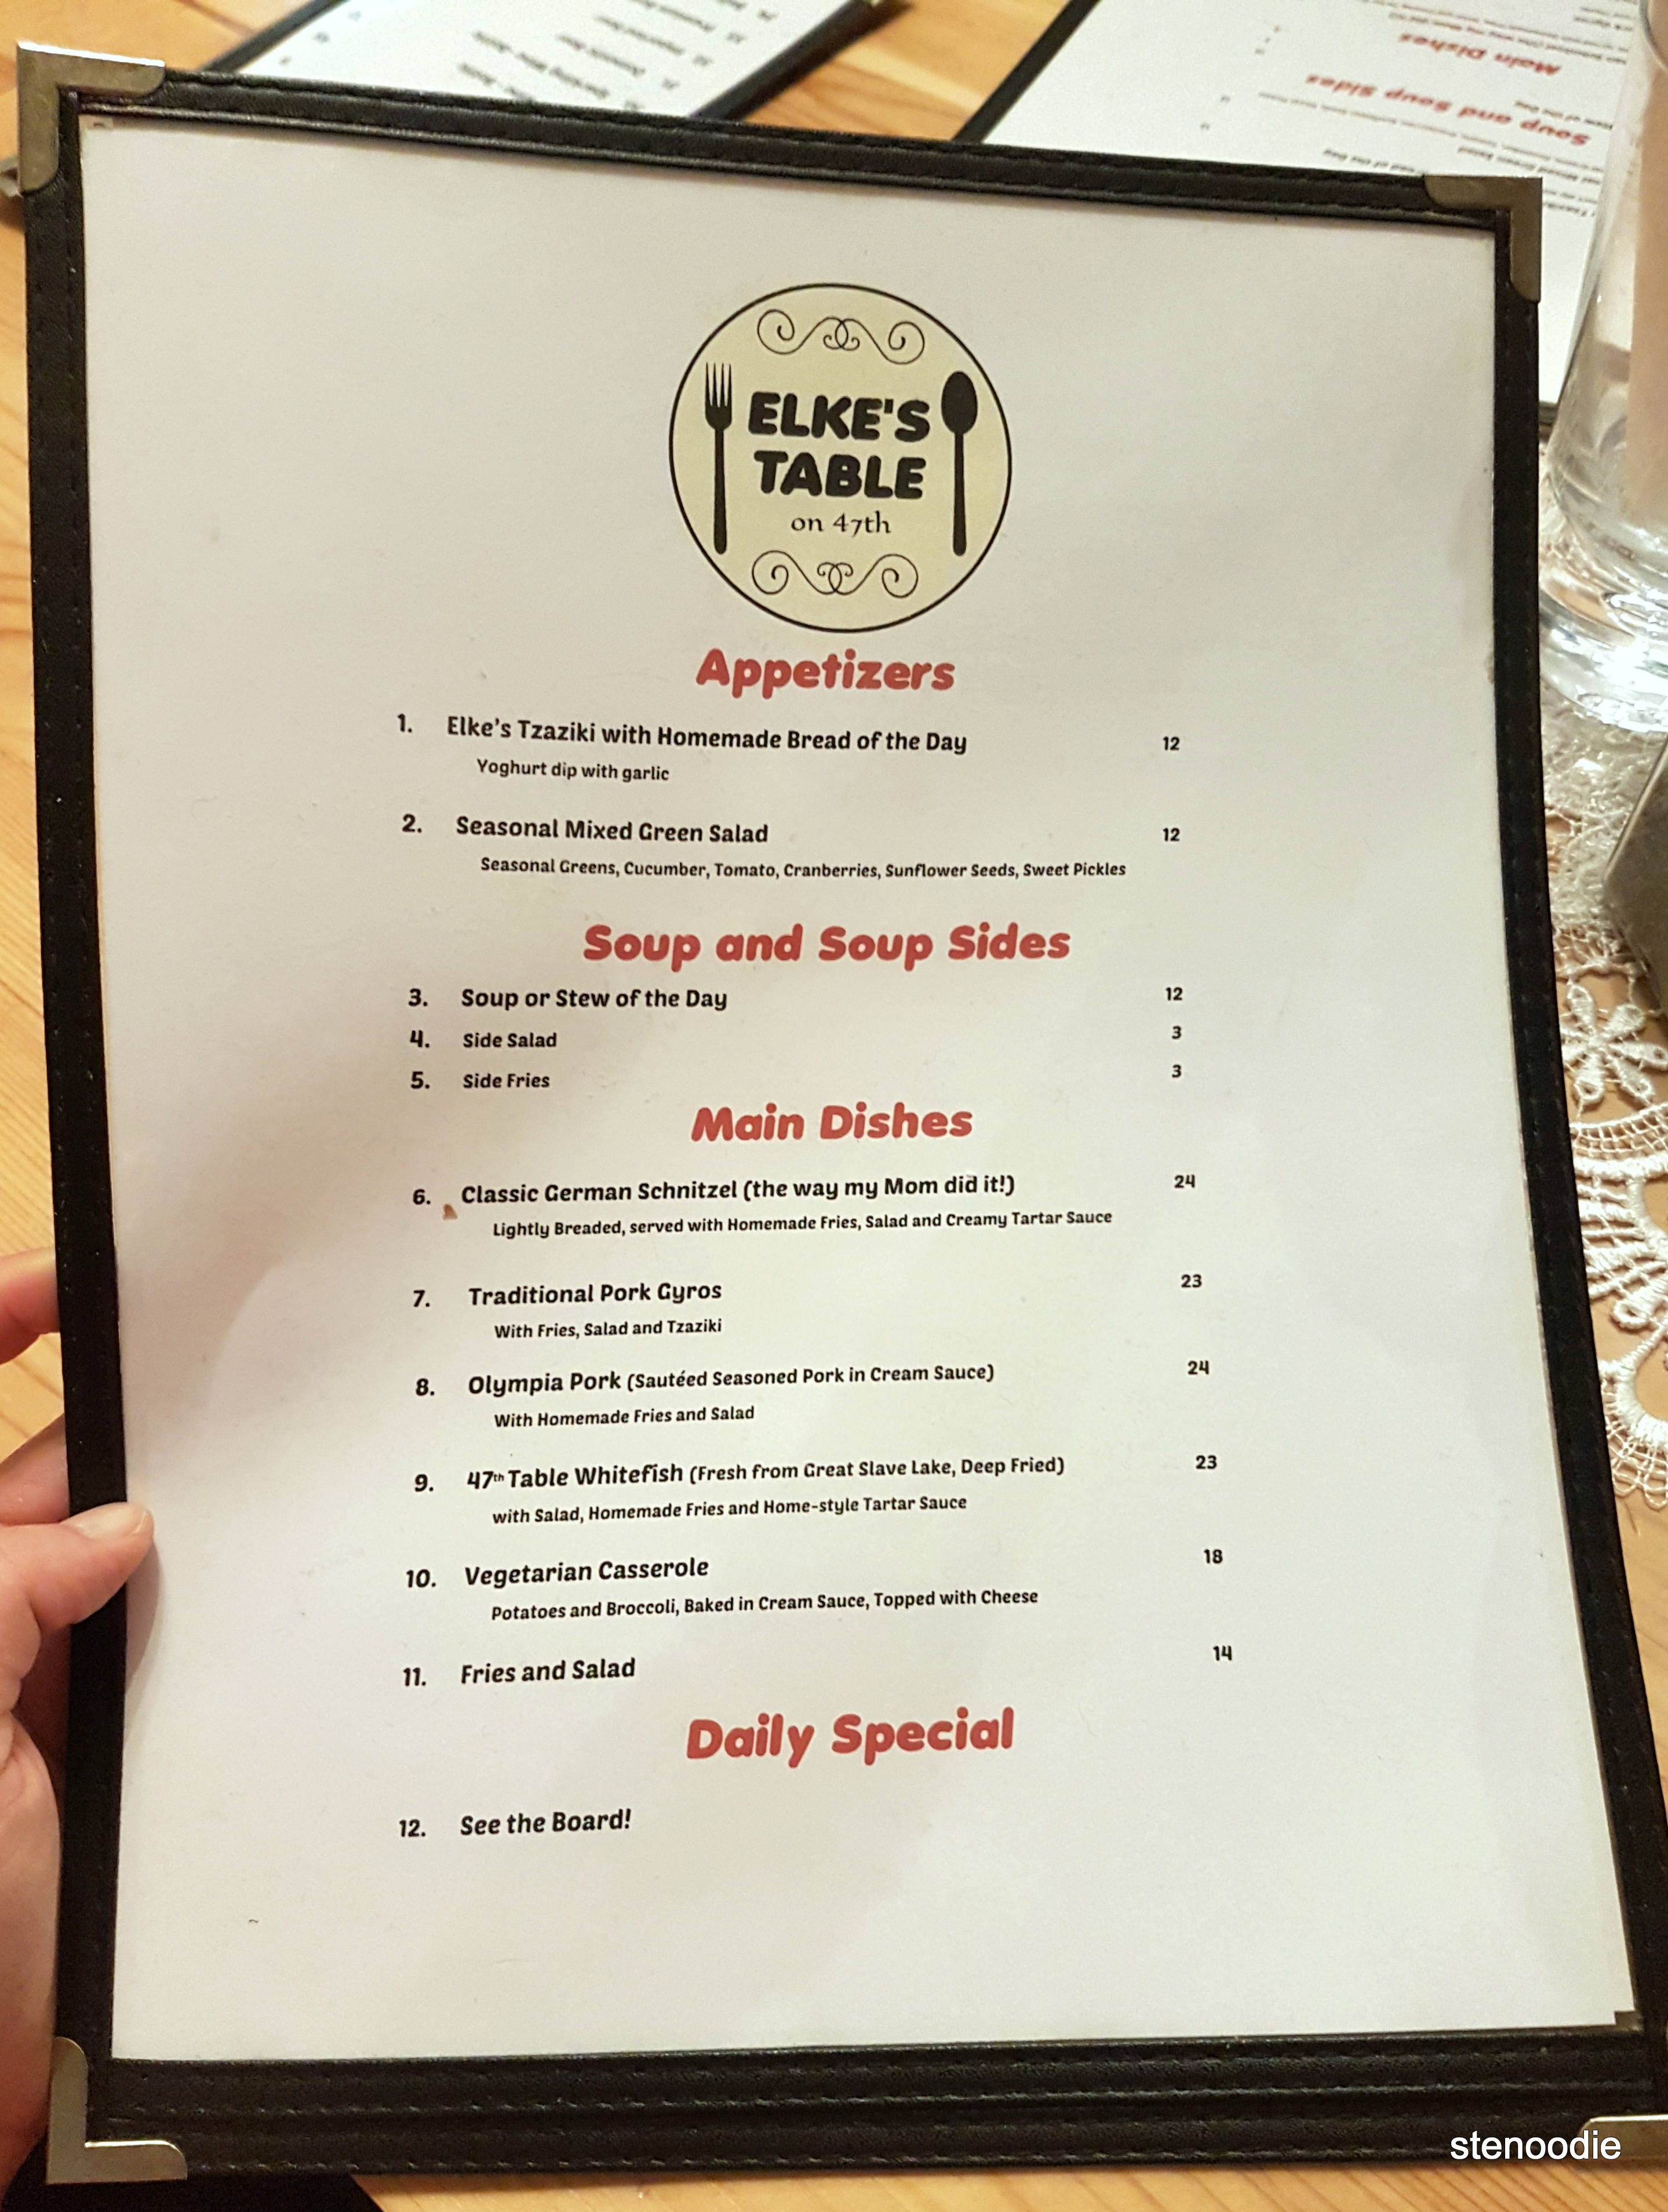 Elke's Table on 47th menu and prices